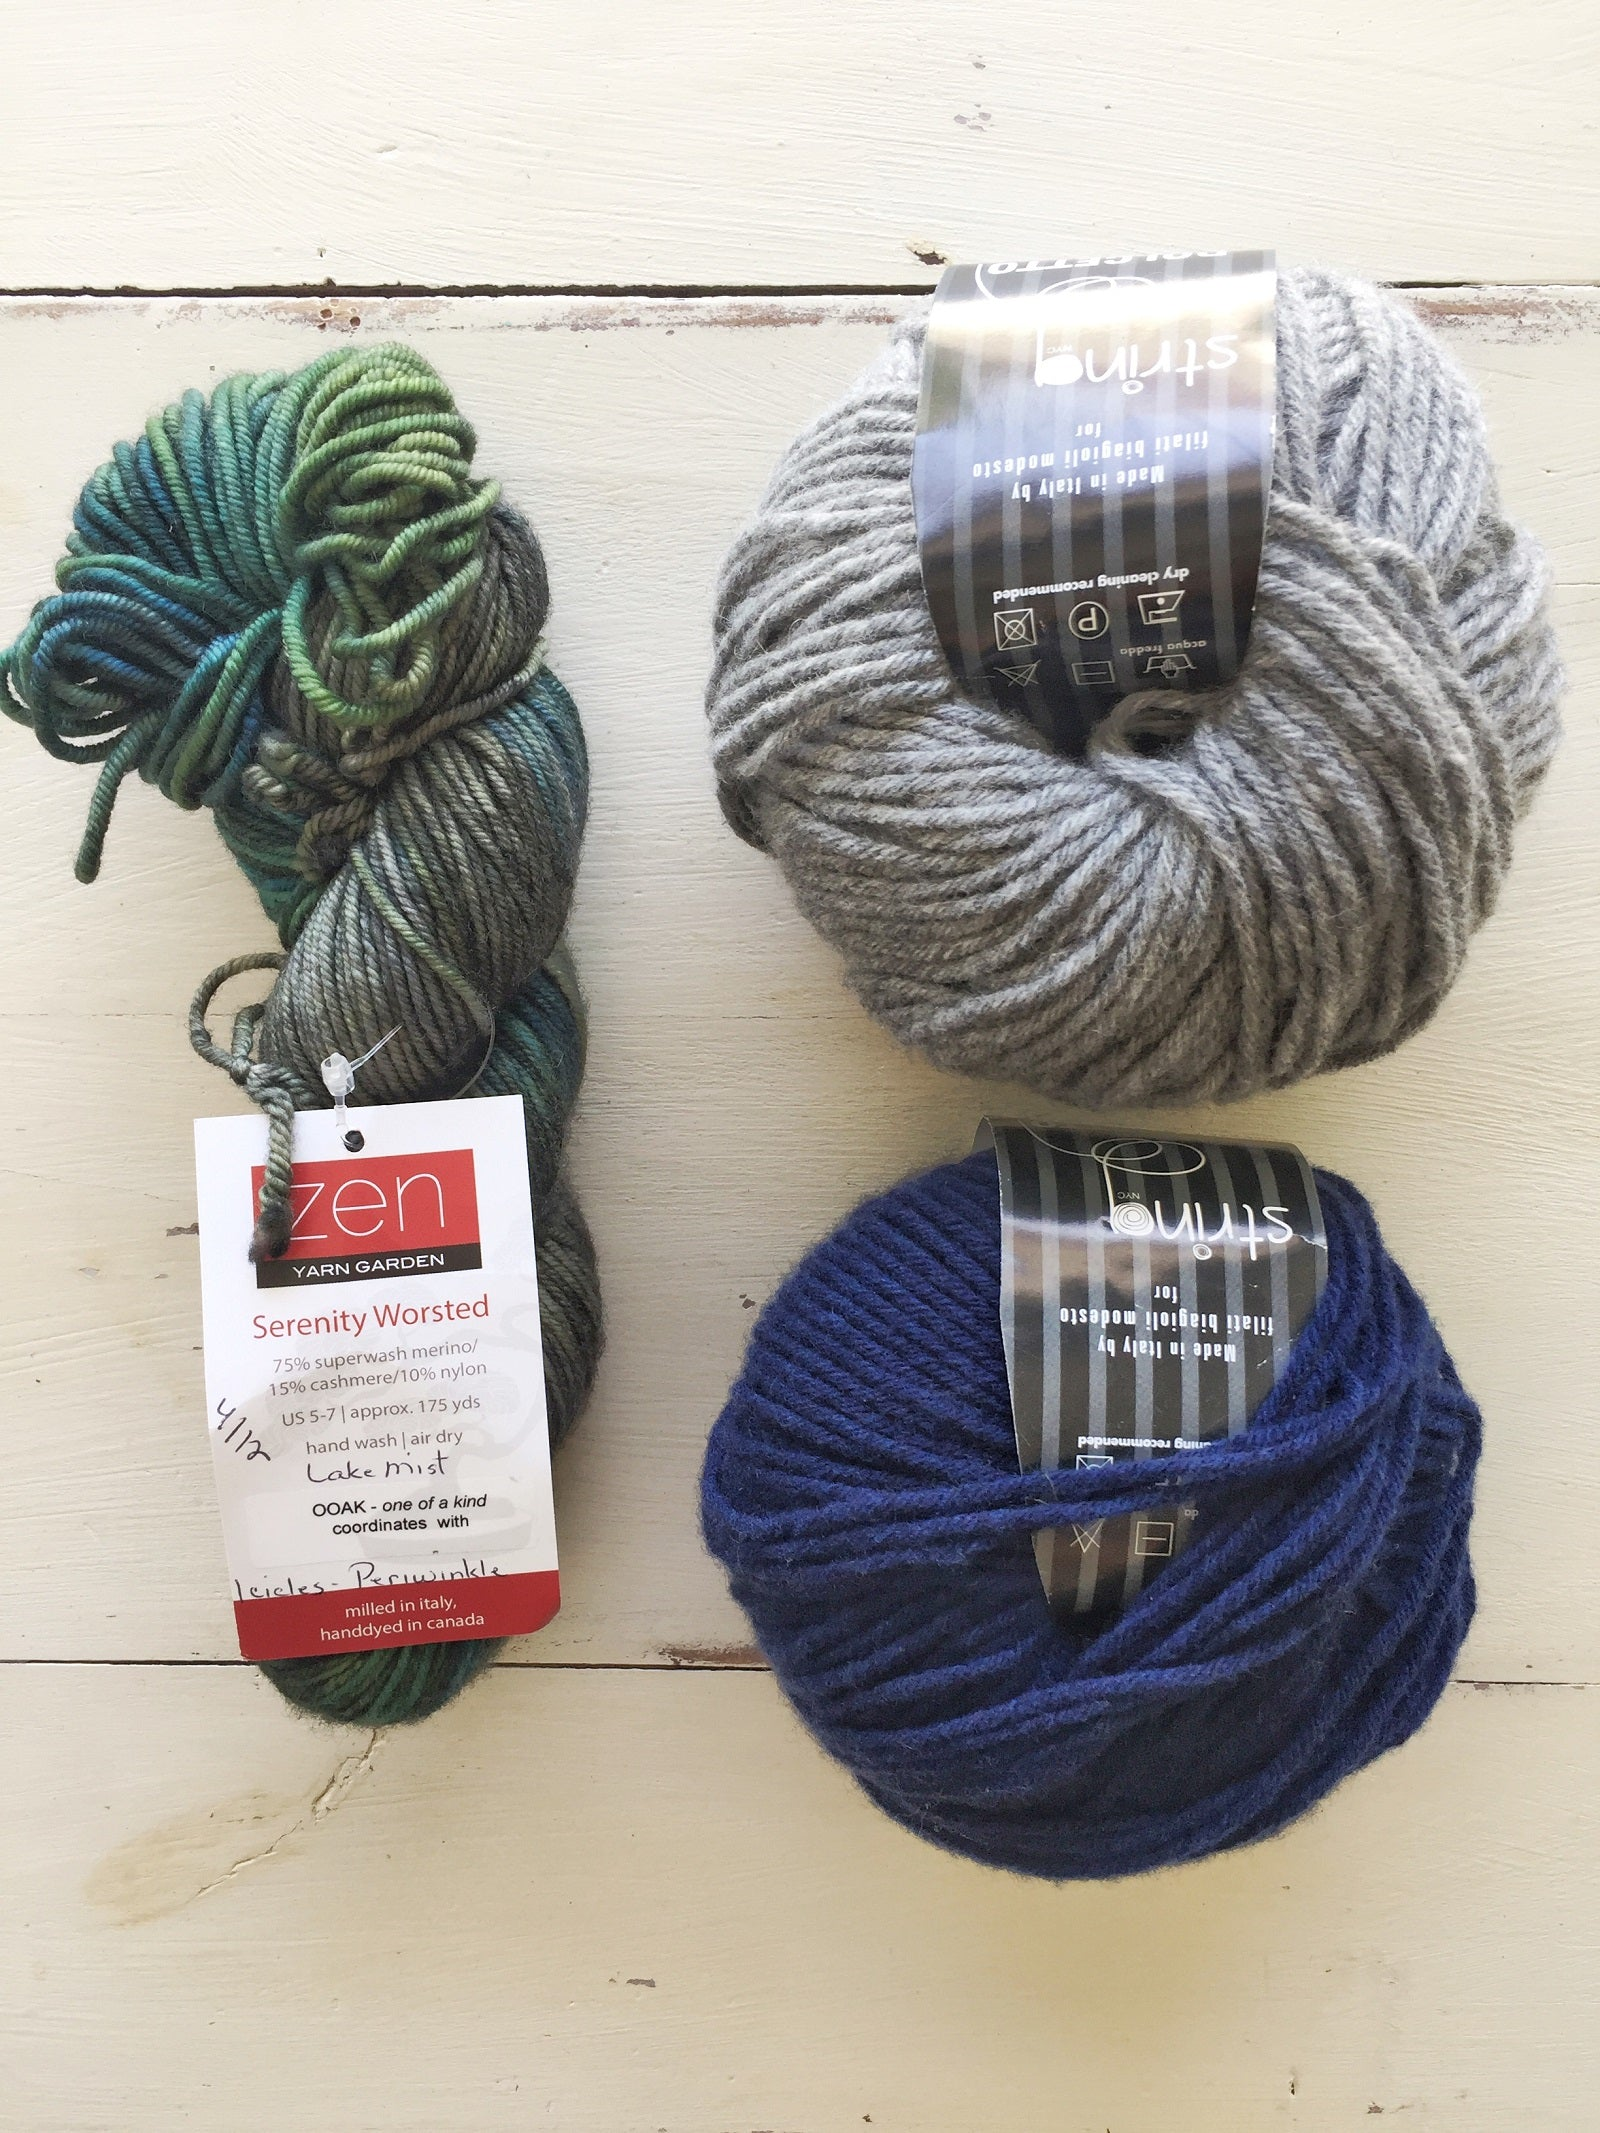 Zen and Dolcetto Striped Cardigan Kit